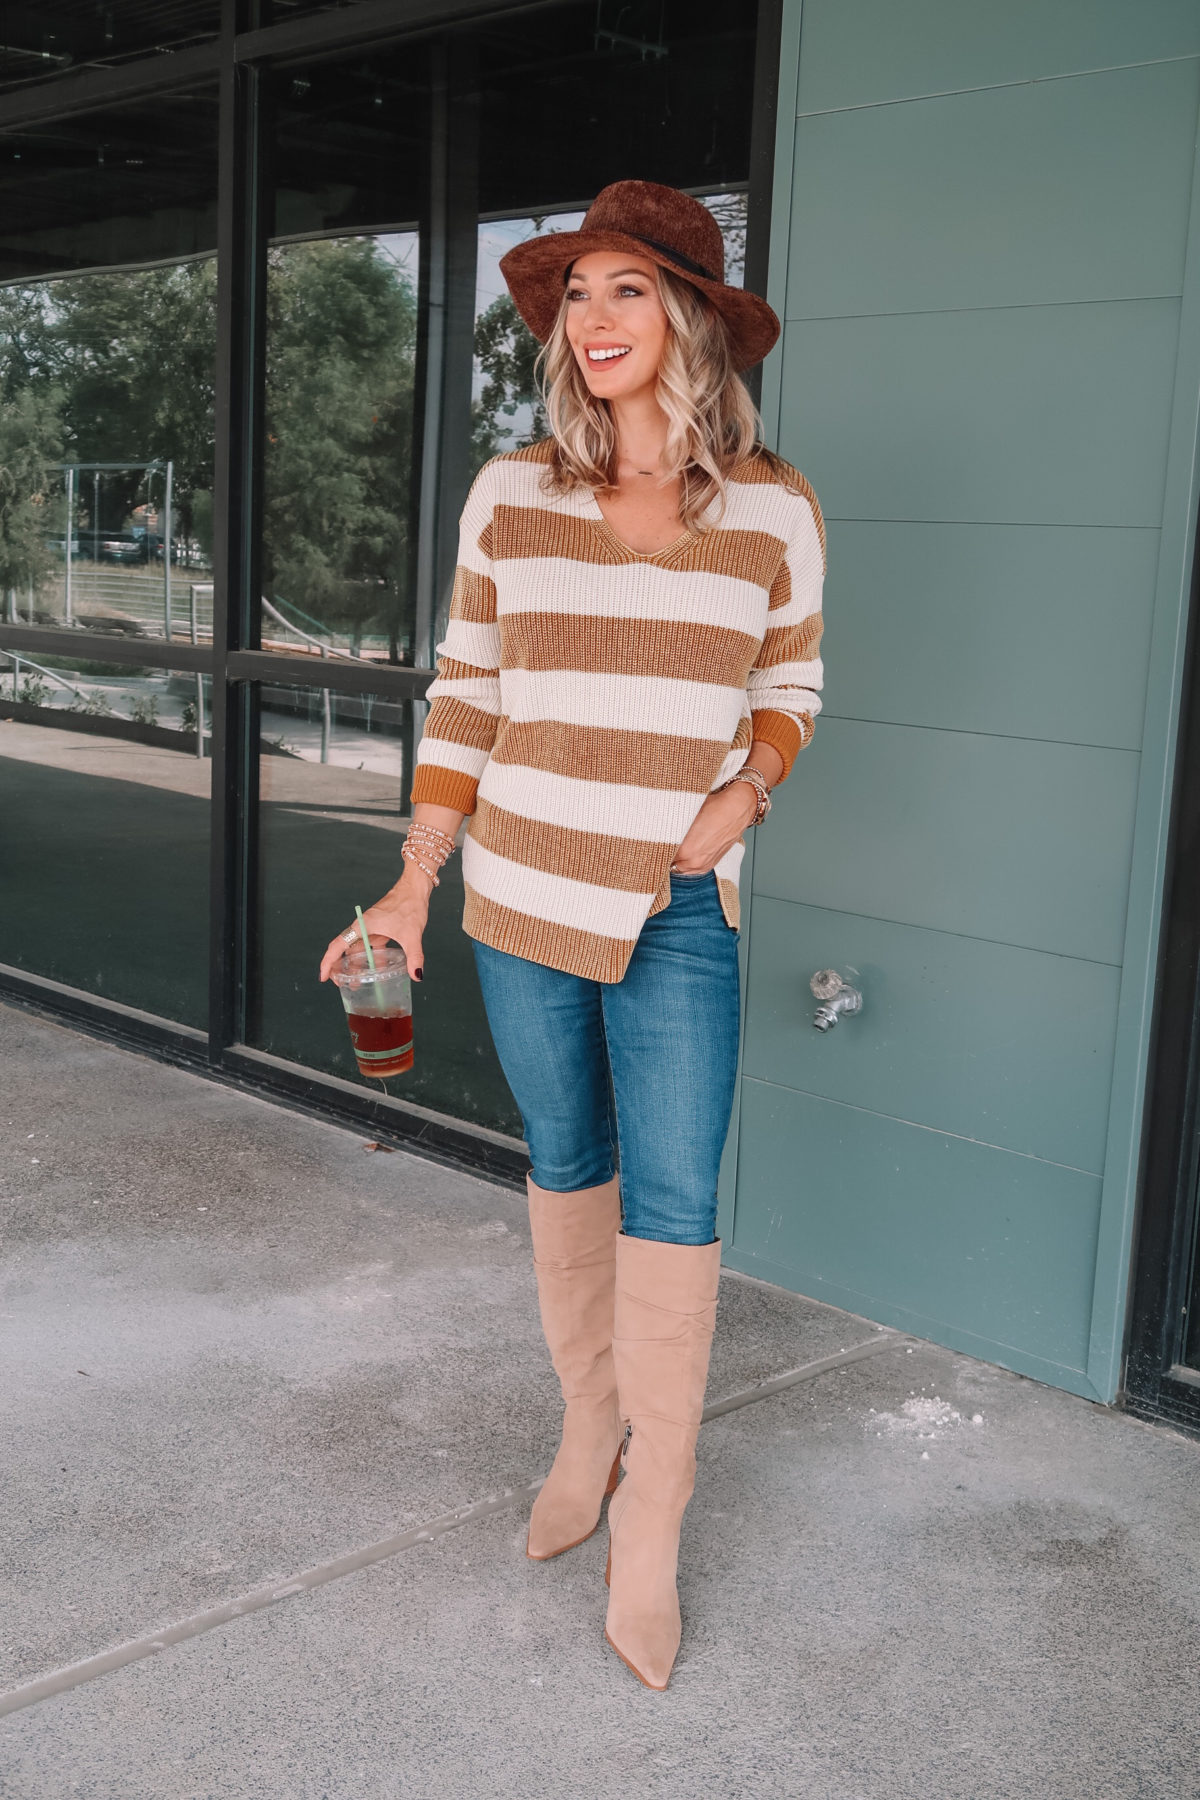 Outfits Lately, Striped Sweater, Jeans, Knee High Boots, Hat